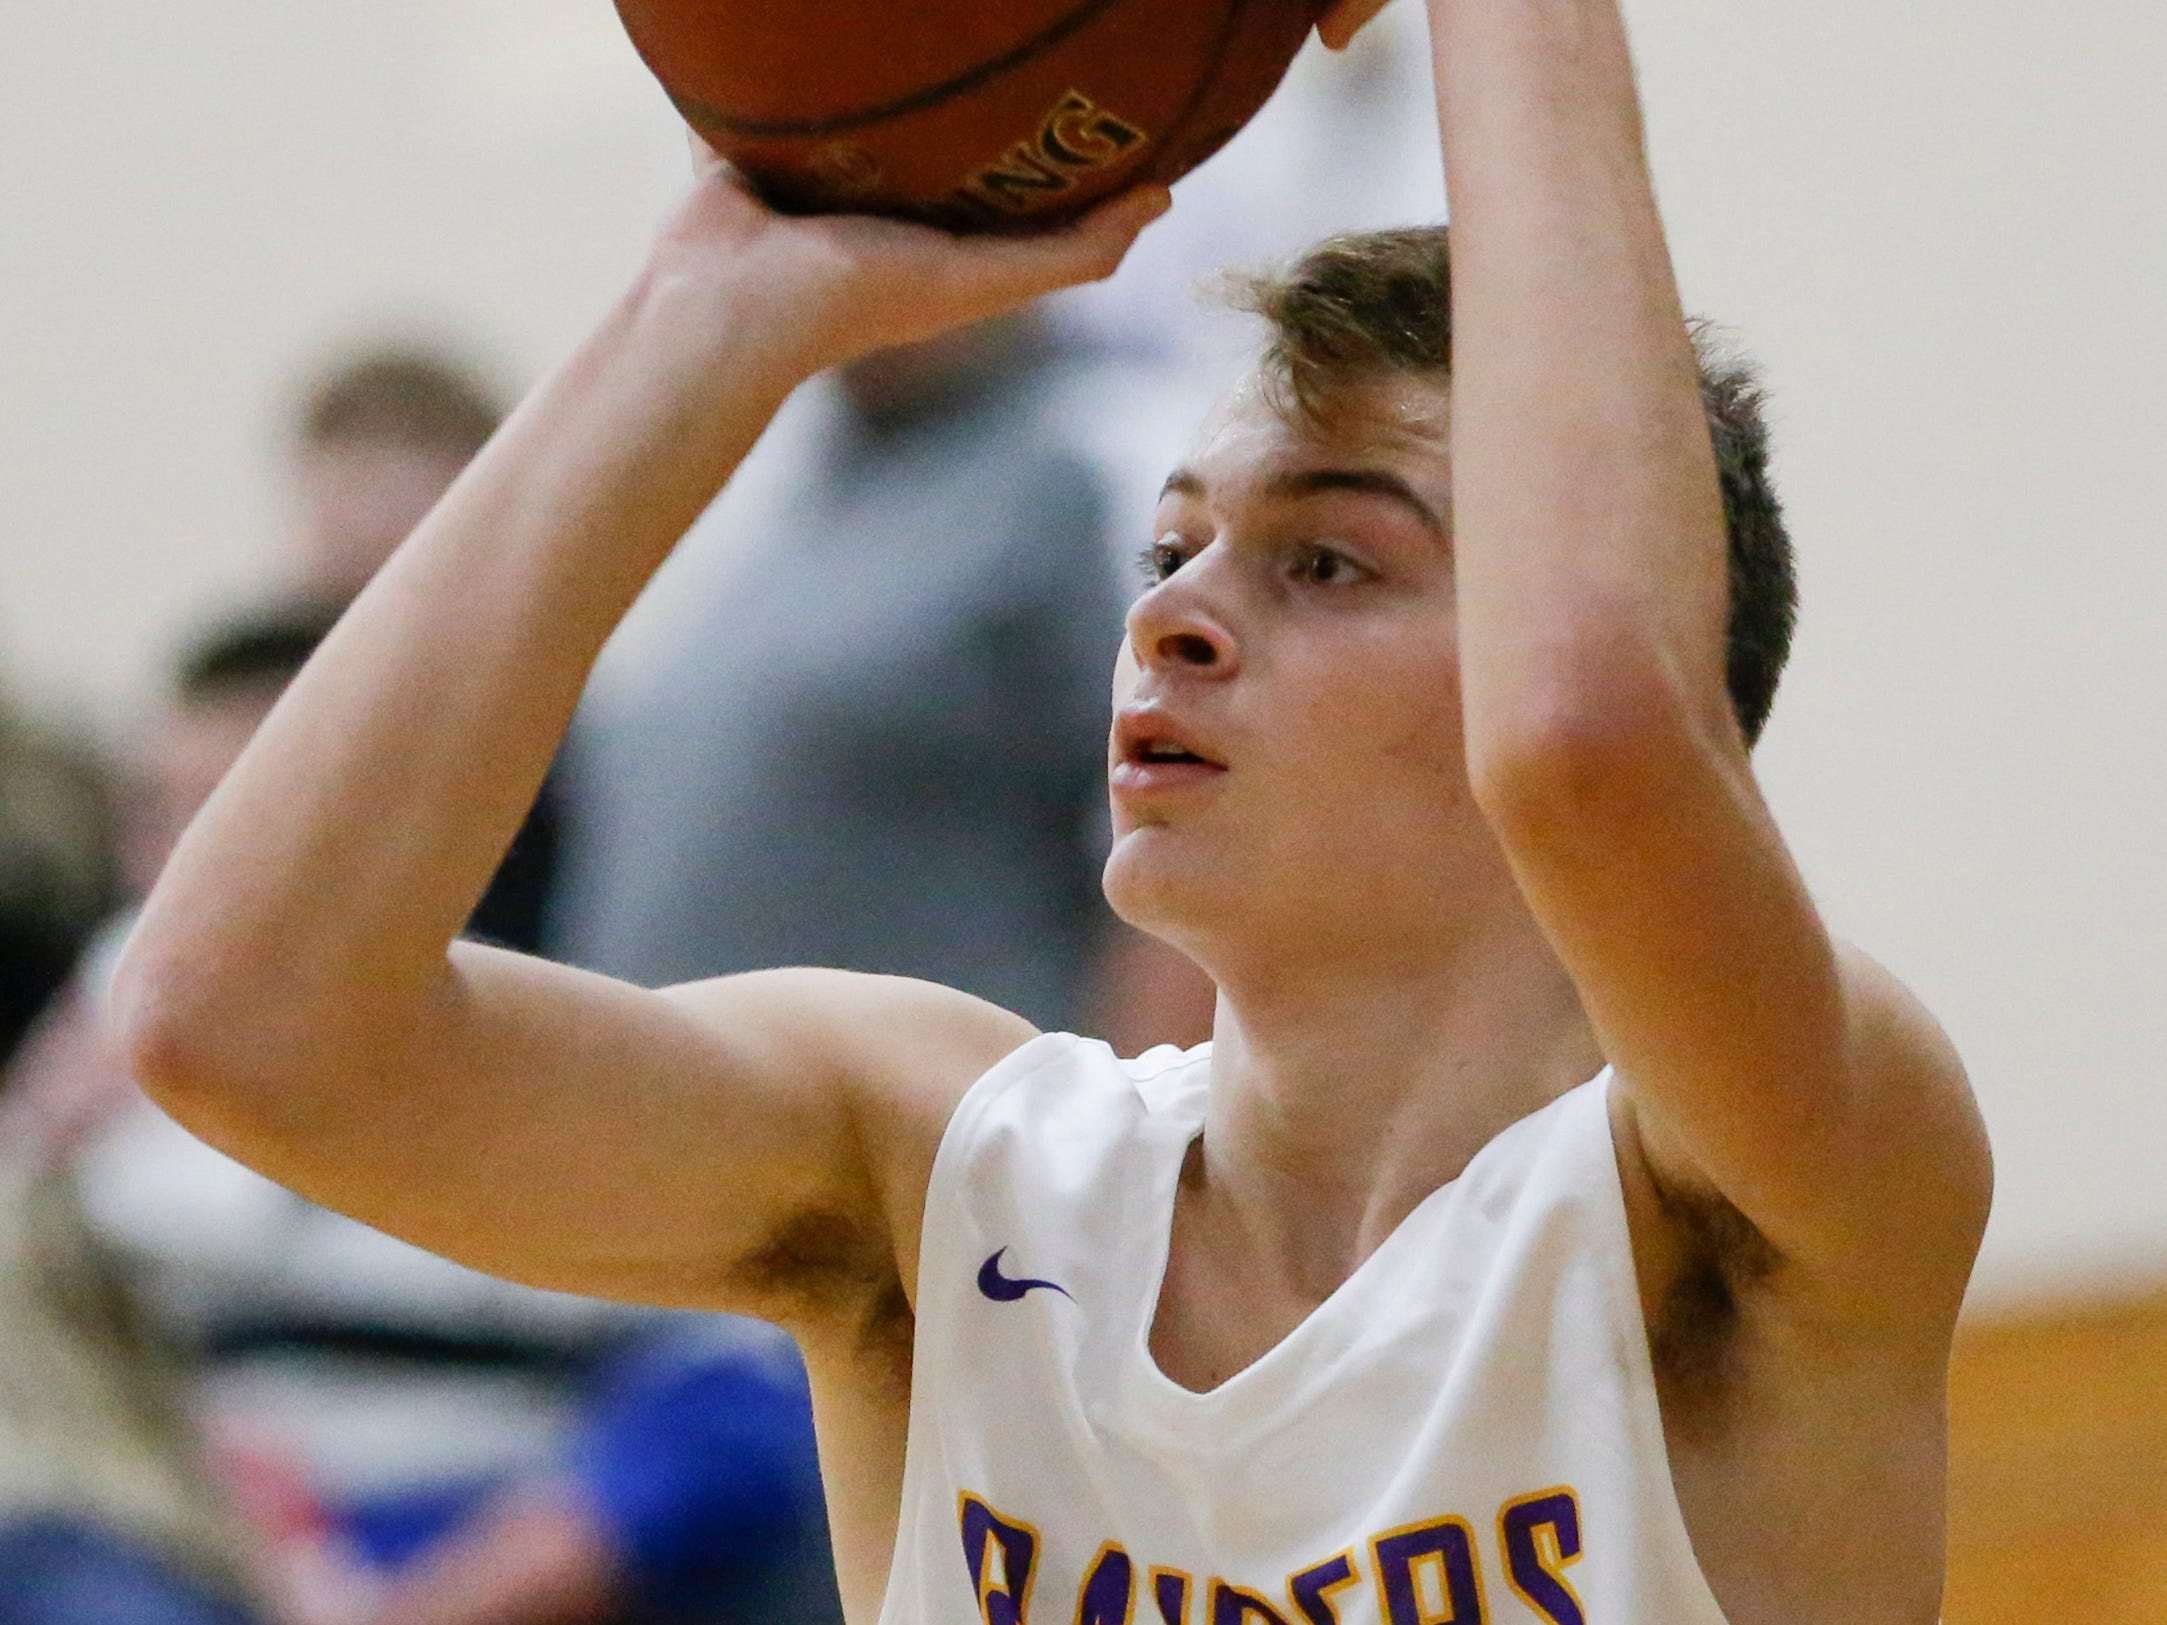 Two Rivers' Alexander Klein shoots against Sheboygan Falls during an Eastern Wisconsin Conference game at Two Rivers High School Tuesday, December 4, 2018, in Two Rivers, Wis. Joshua Clark/USA TODAY NETWORK-Wisconsin